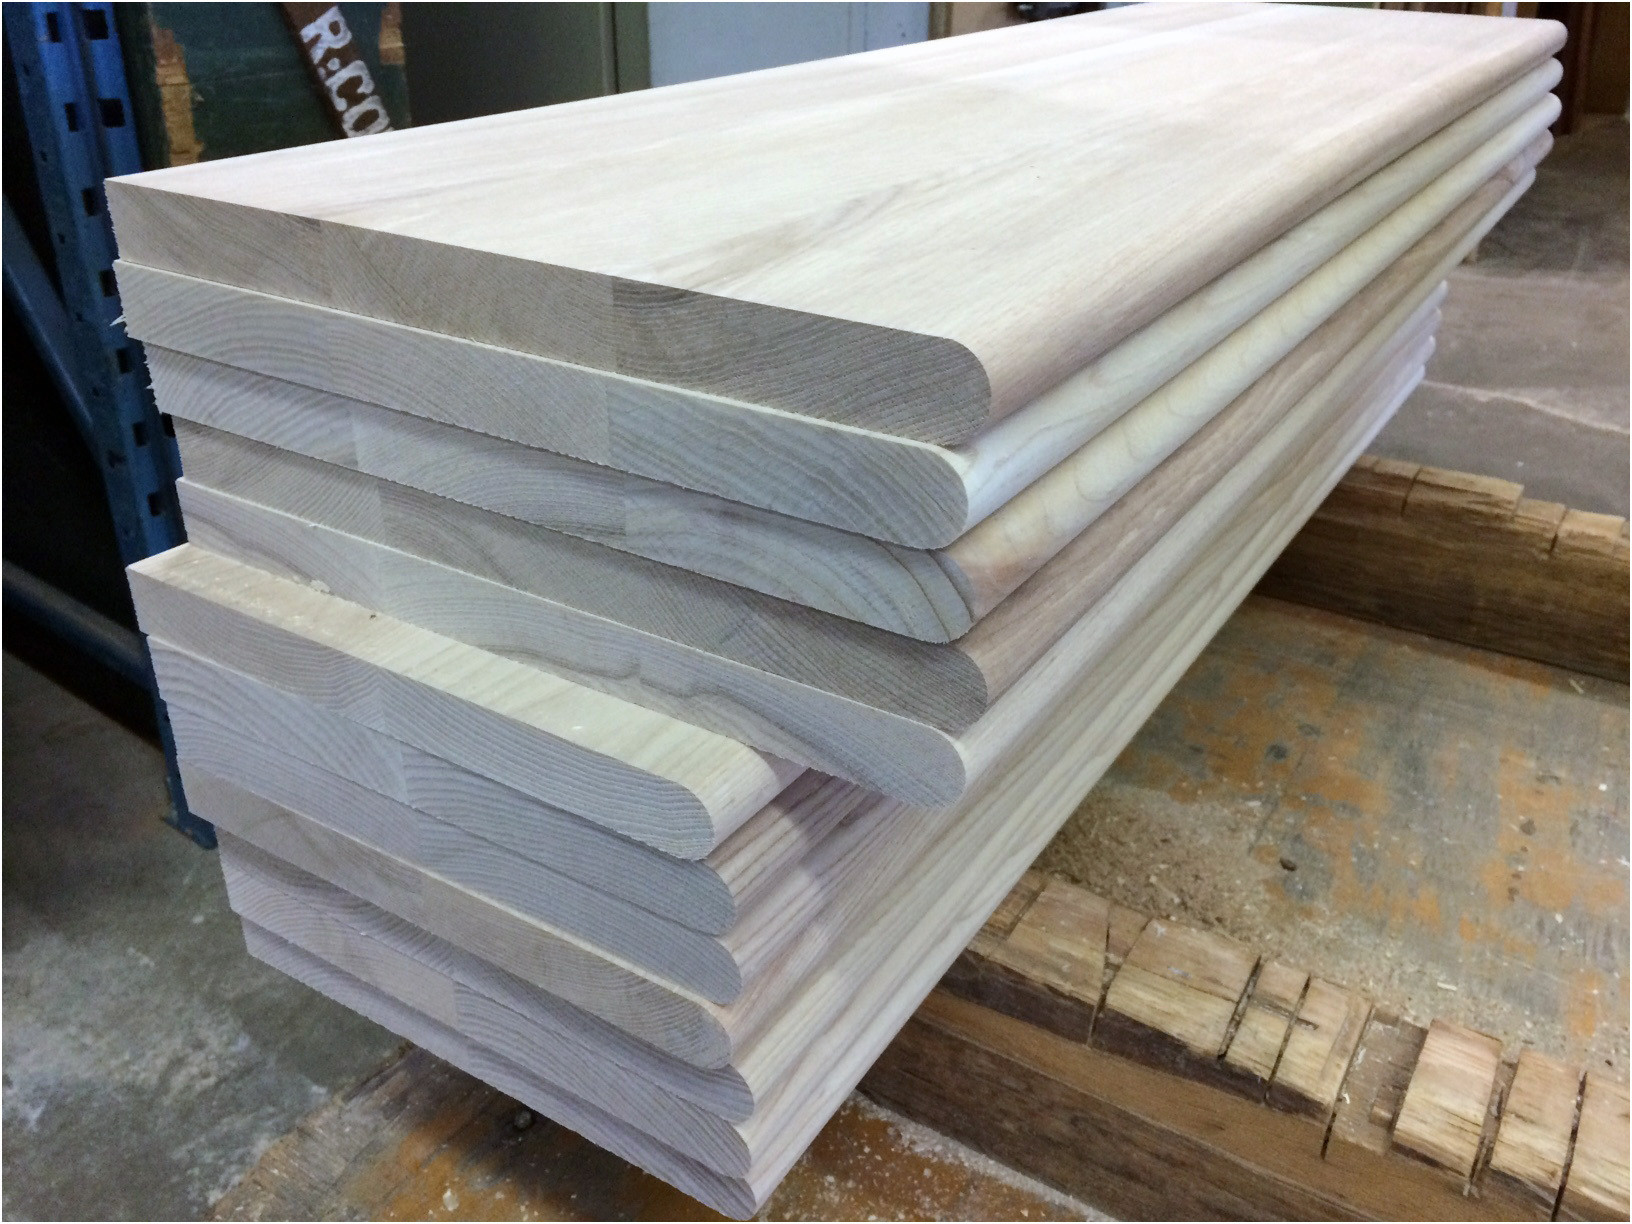 tiger hardwood flooring canada of tigerwood stair treads beautiful inspiration west wind hardwood regarding tigerwood stair treads beautiful inspiration west wind hardwood